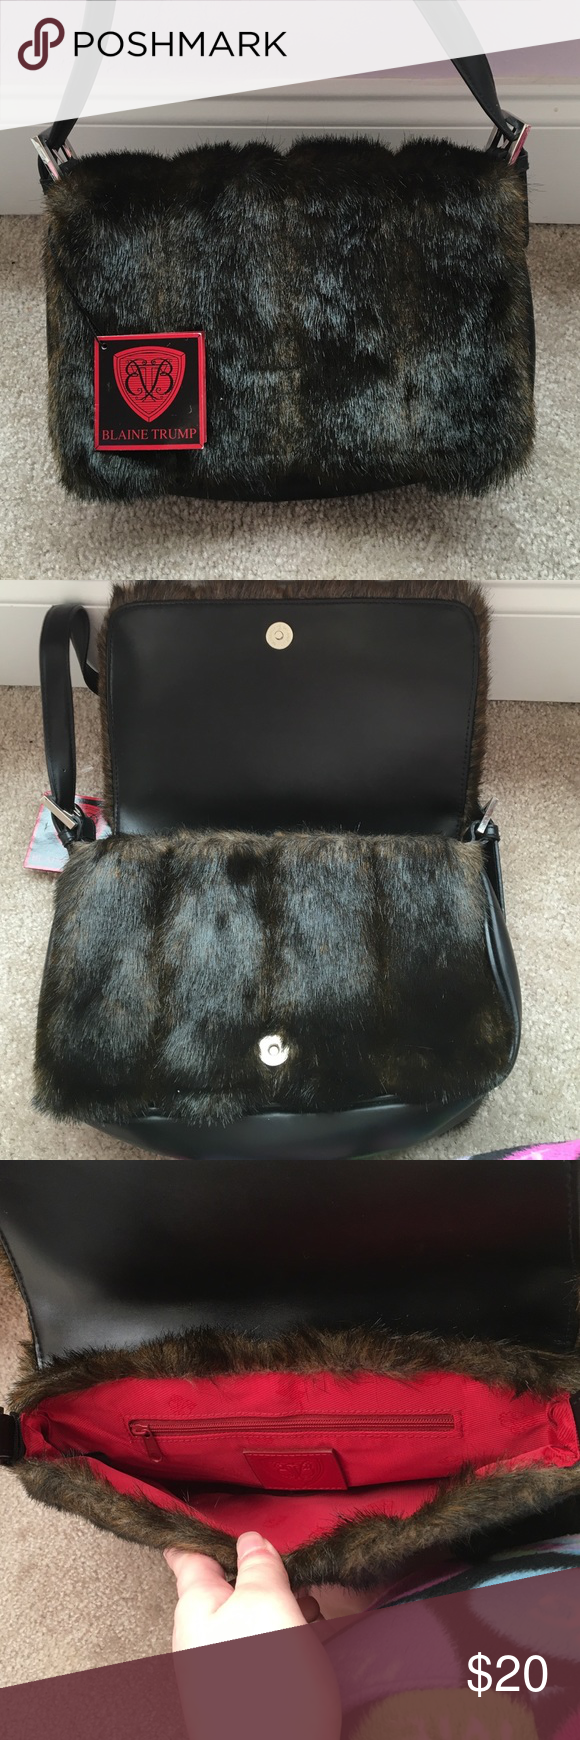 Blaine Trump Faux Fur Handbag Never Been Used Still Has The Tag On It Bags Shoulder